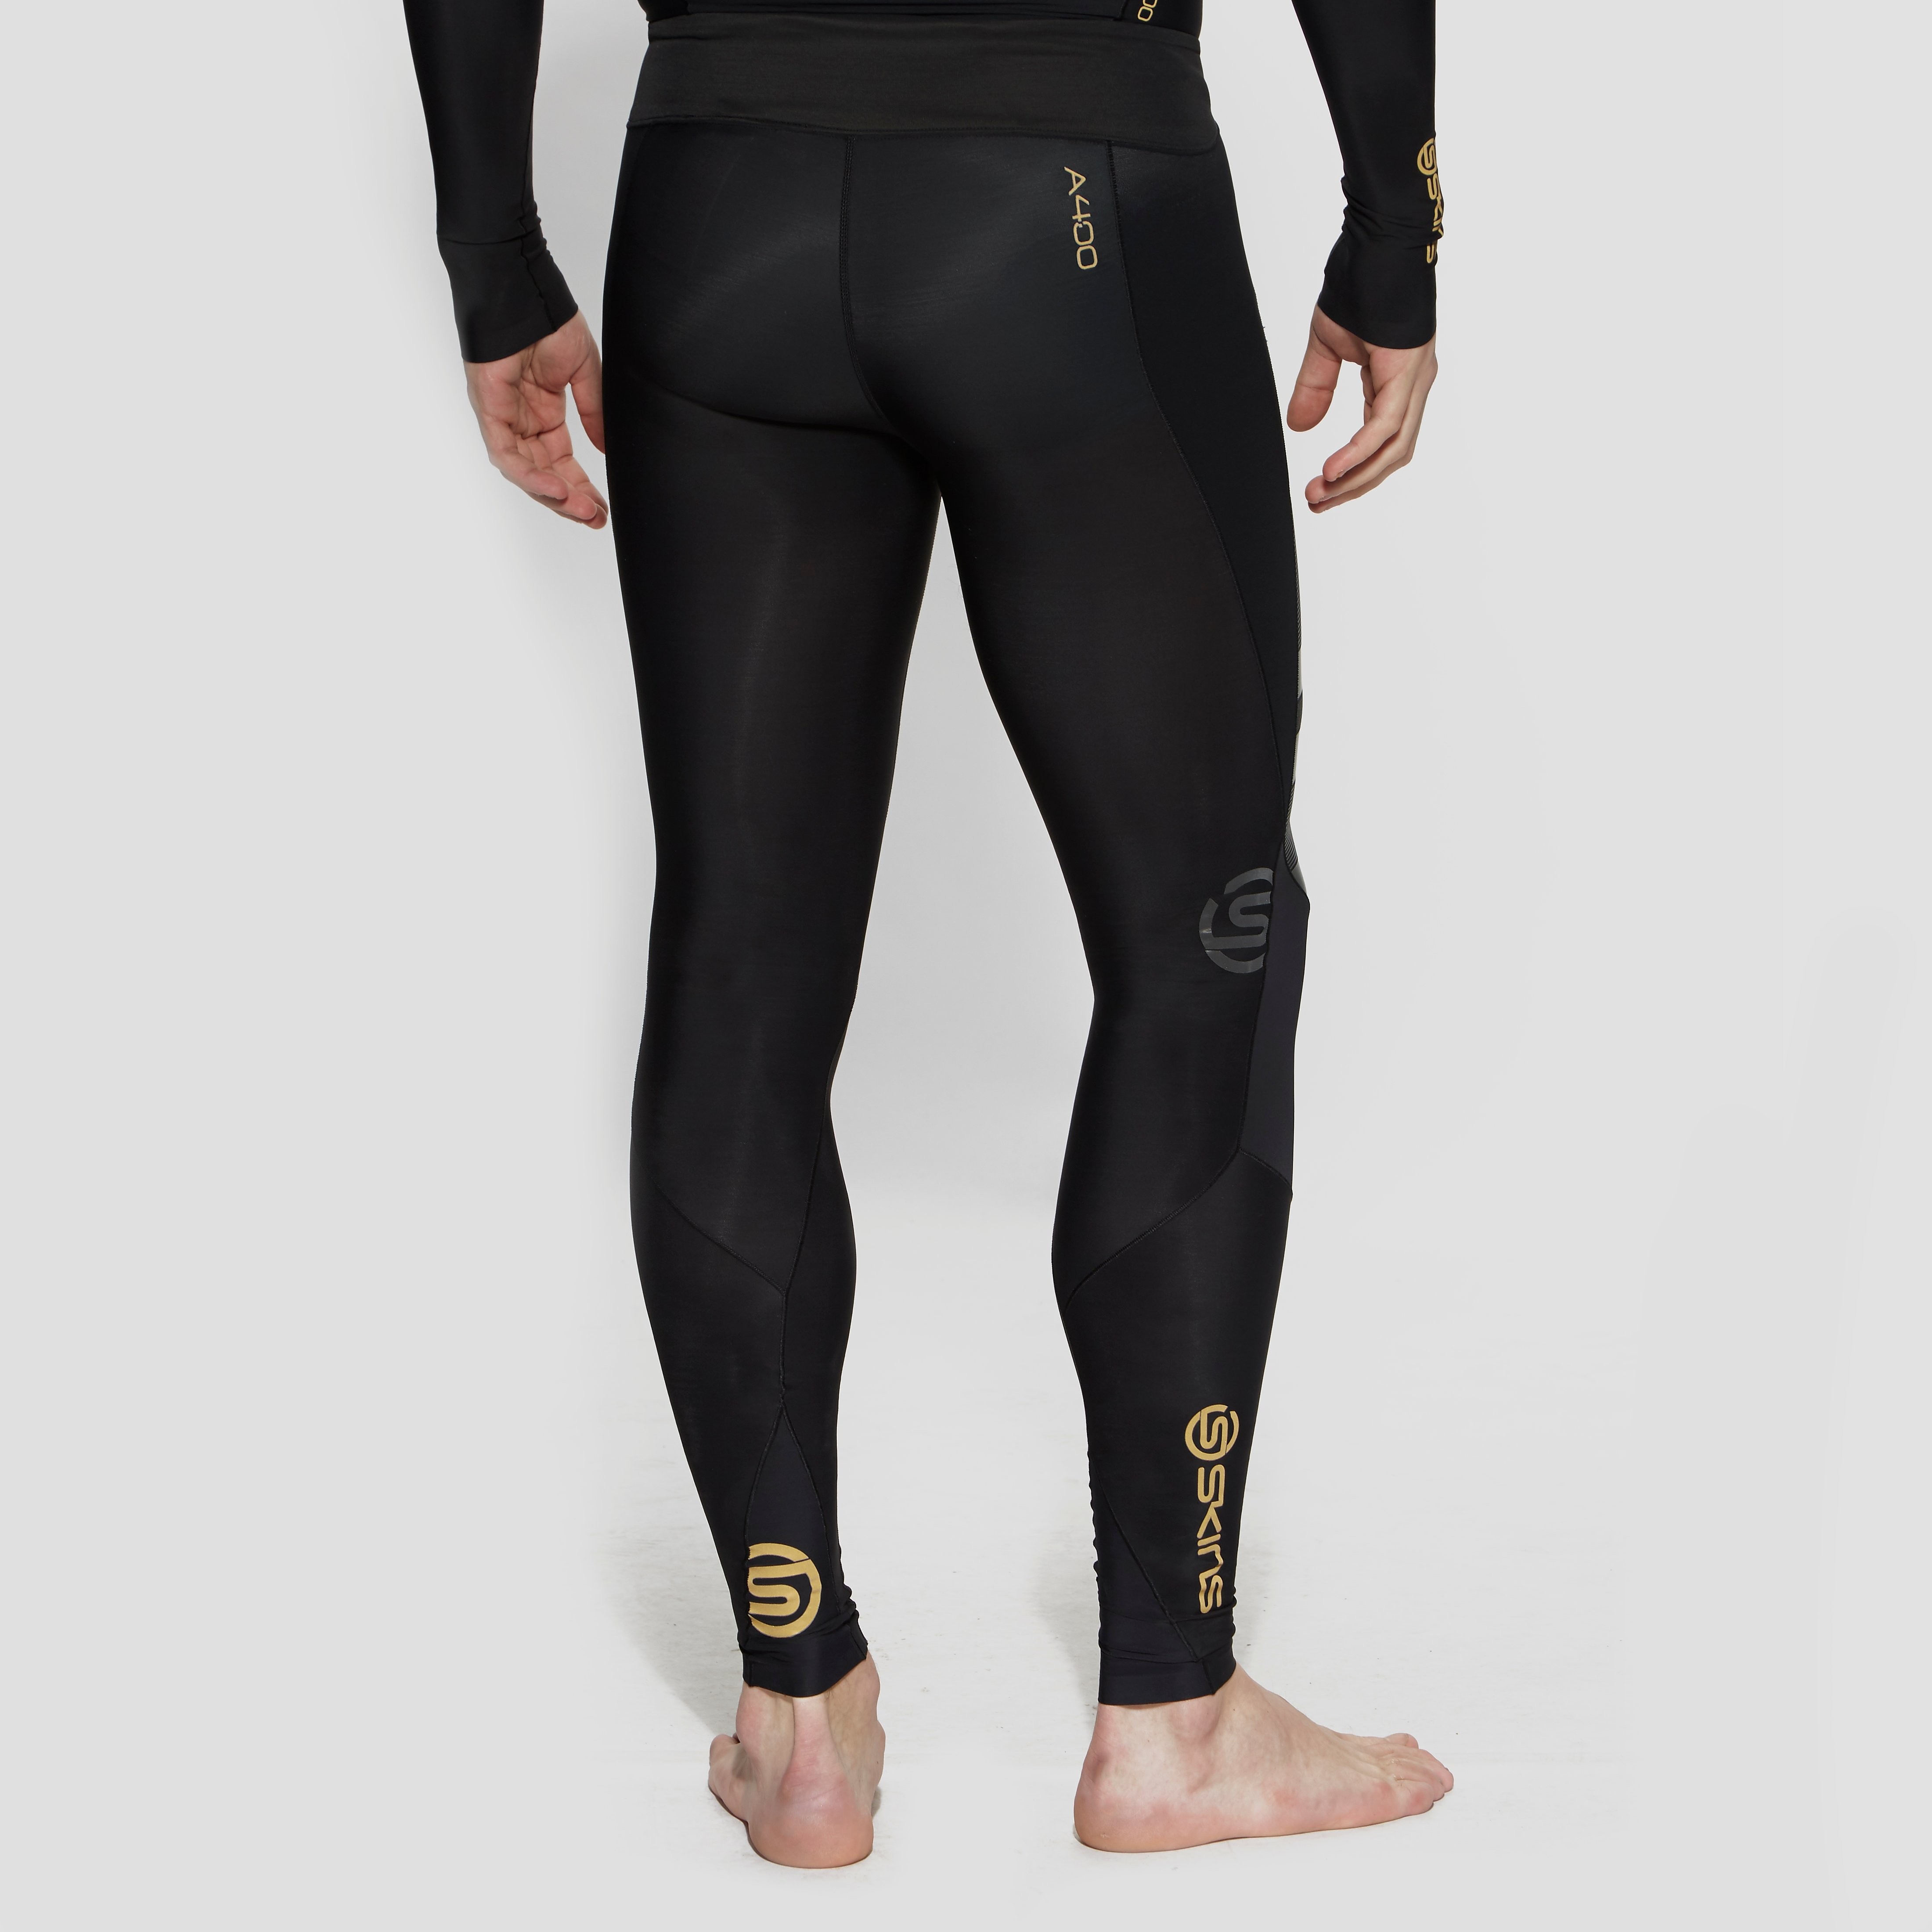 Skins A400 Dynamic Compression Men's Tights